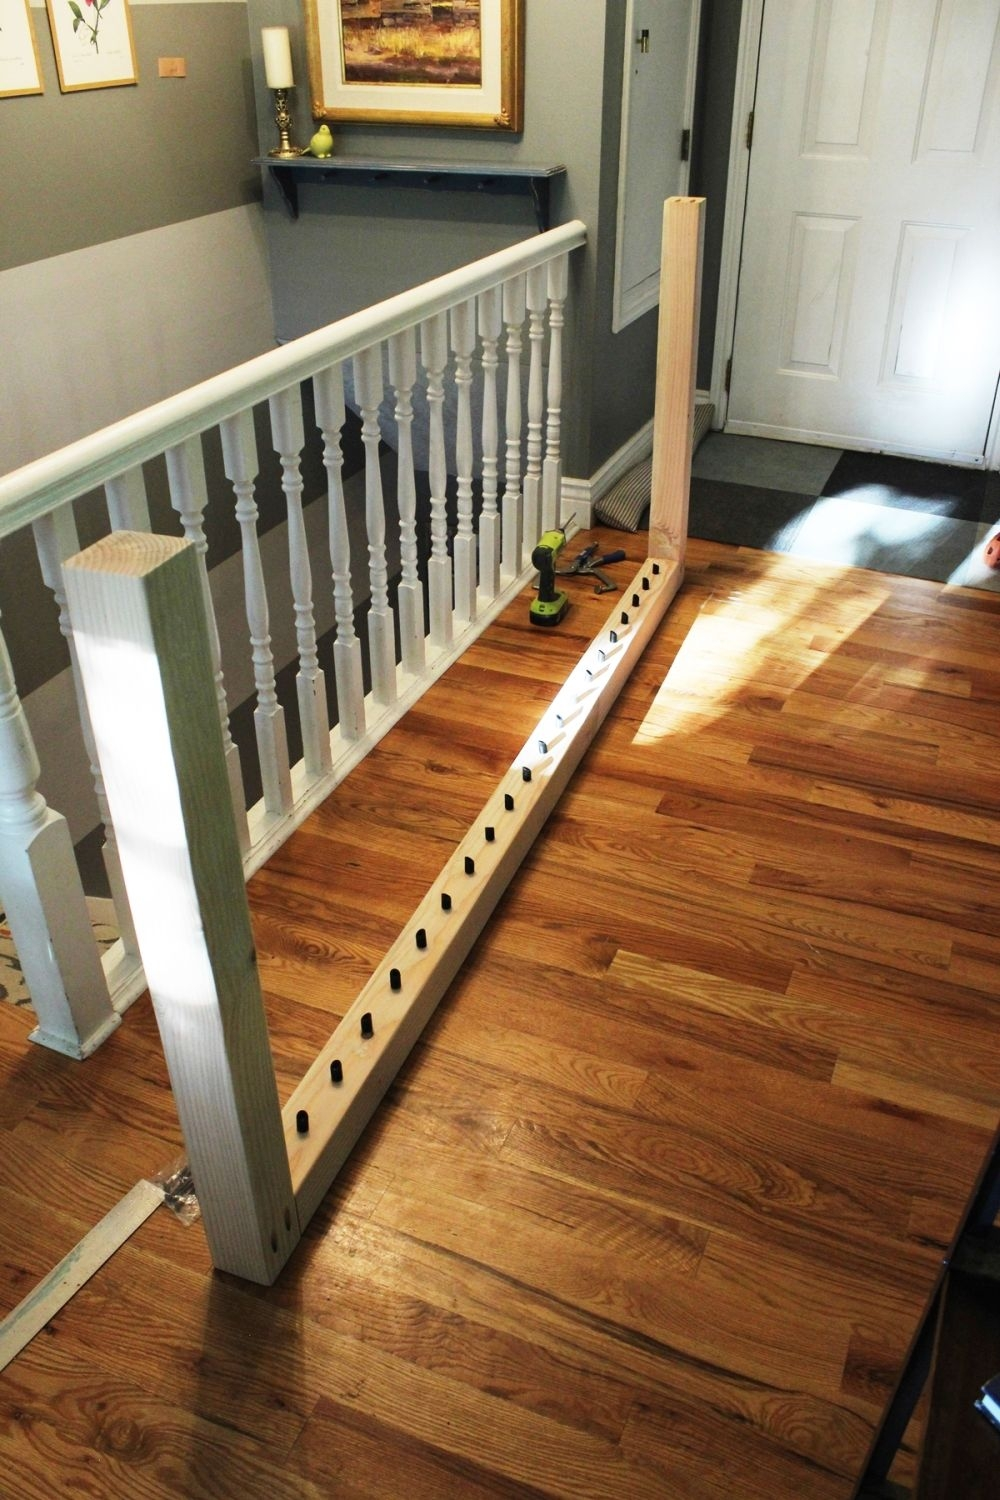 Diy Stair Handrail With Industrial Pipes And Wood | Building A Stair Rail | Craftsman Style | White | Horizontal | Glass | Inexpensive